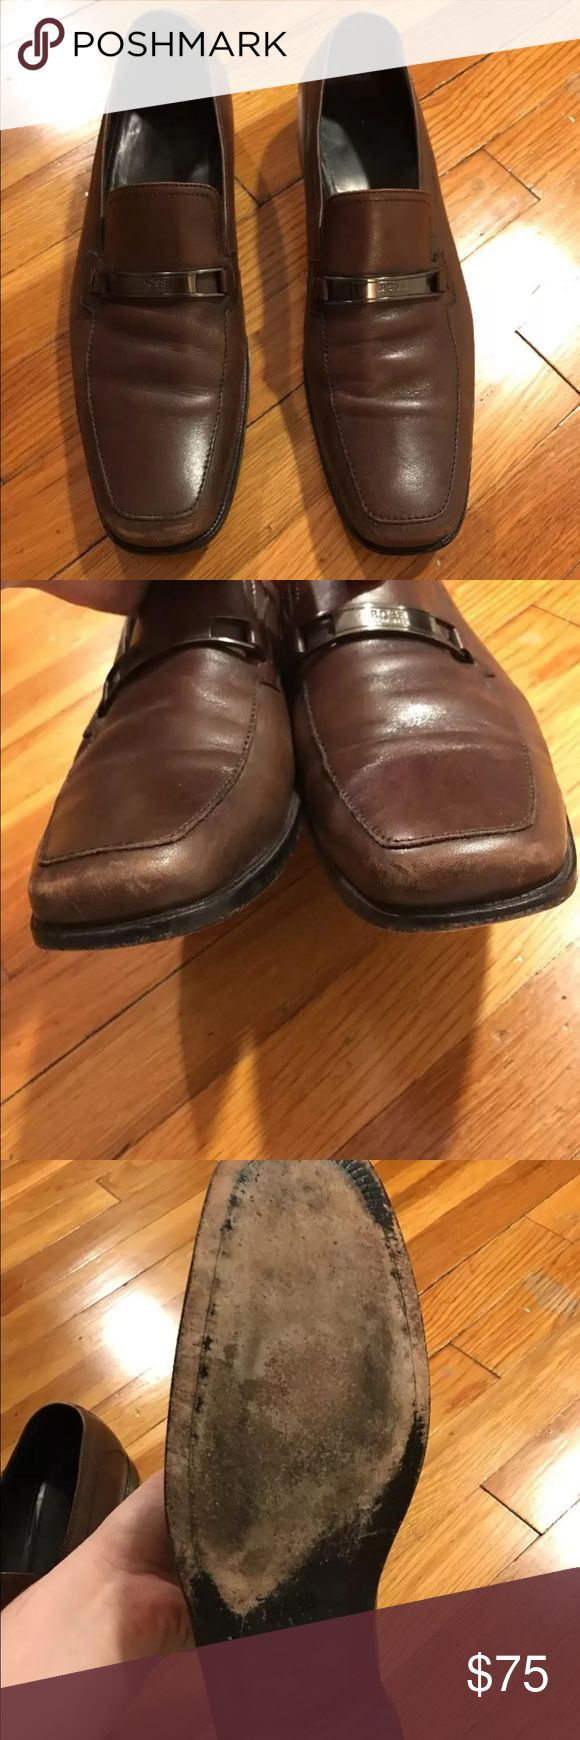 Hugo Boss Men's Brown Loafers size 10.5 Super slick Hugo Boss loafers! A nice brown color in size 10.5. These are in good used condition, I tried my best to photograph the signs of wear. See photos of wear in toe area, some creasing, some wear on the soles and also some imperfections on the corners of the heels. Overall very nice! Hugo Boss Shoes Loafers & Slip-Ons